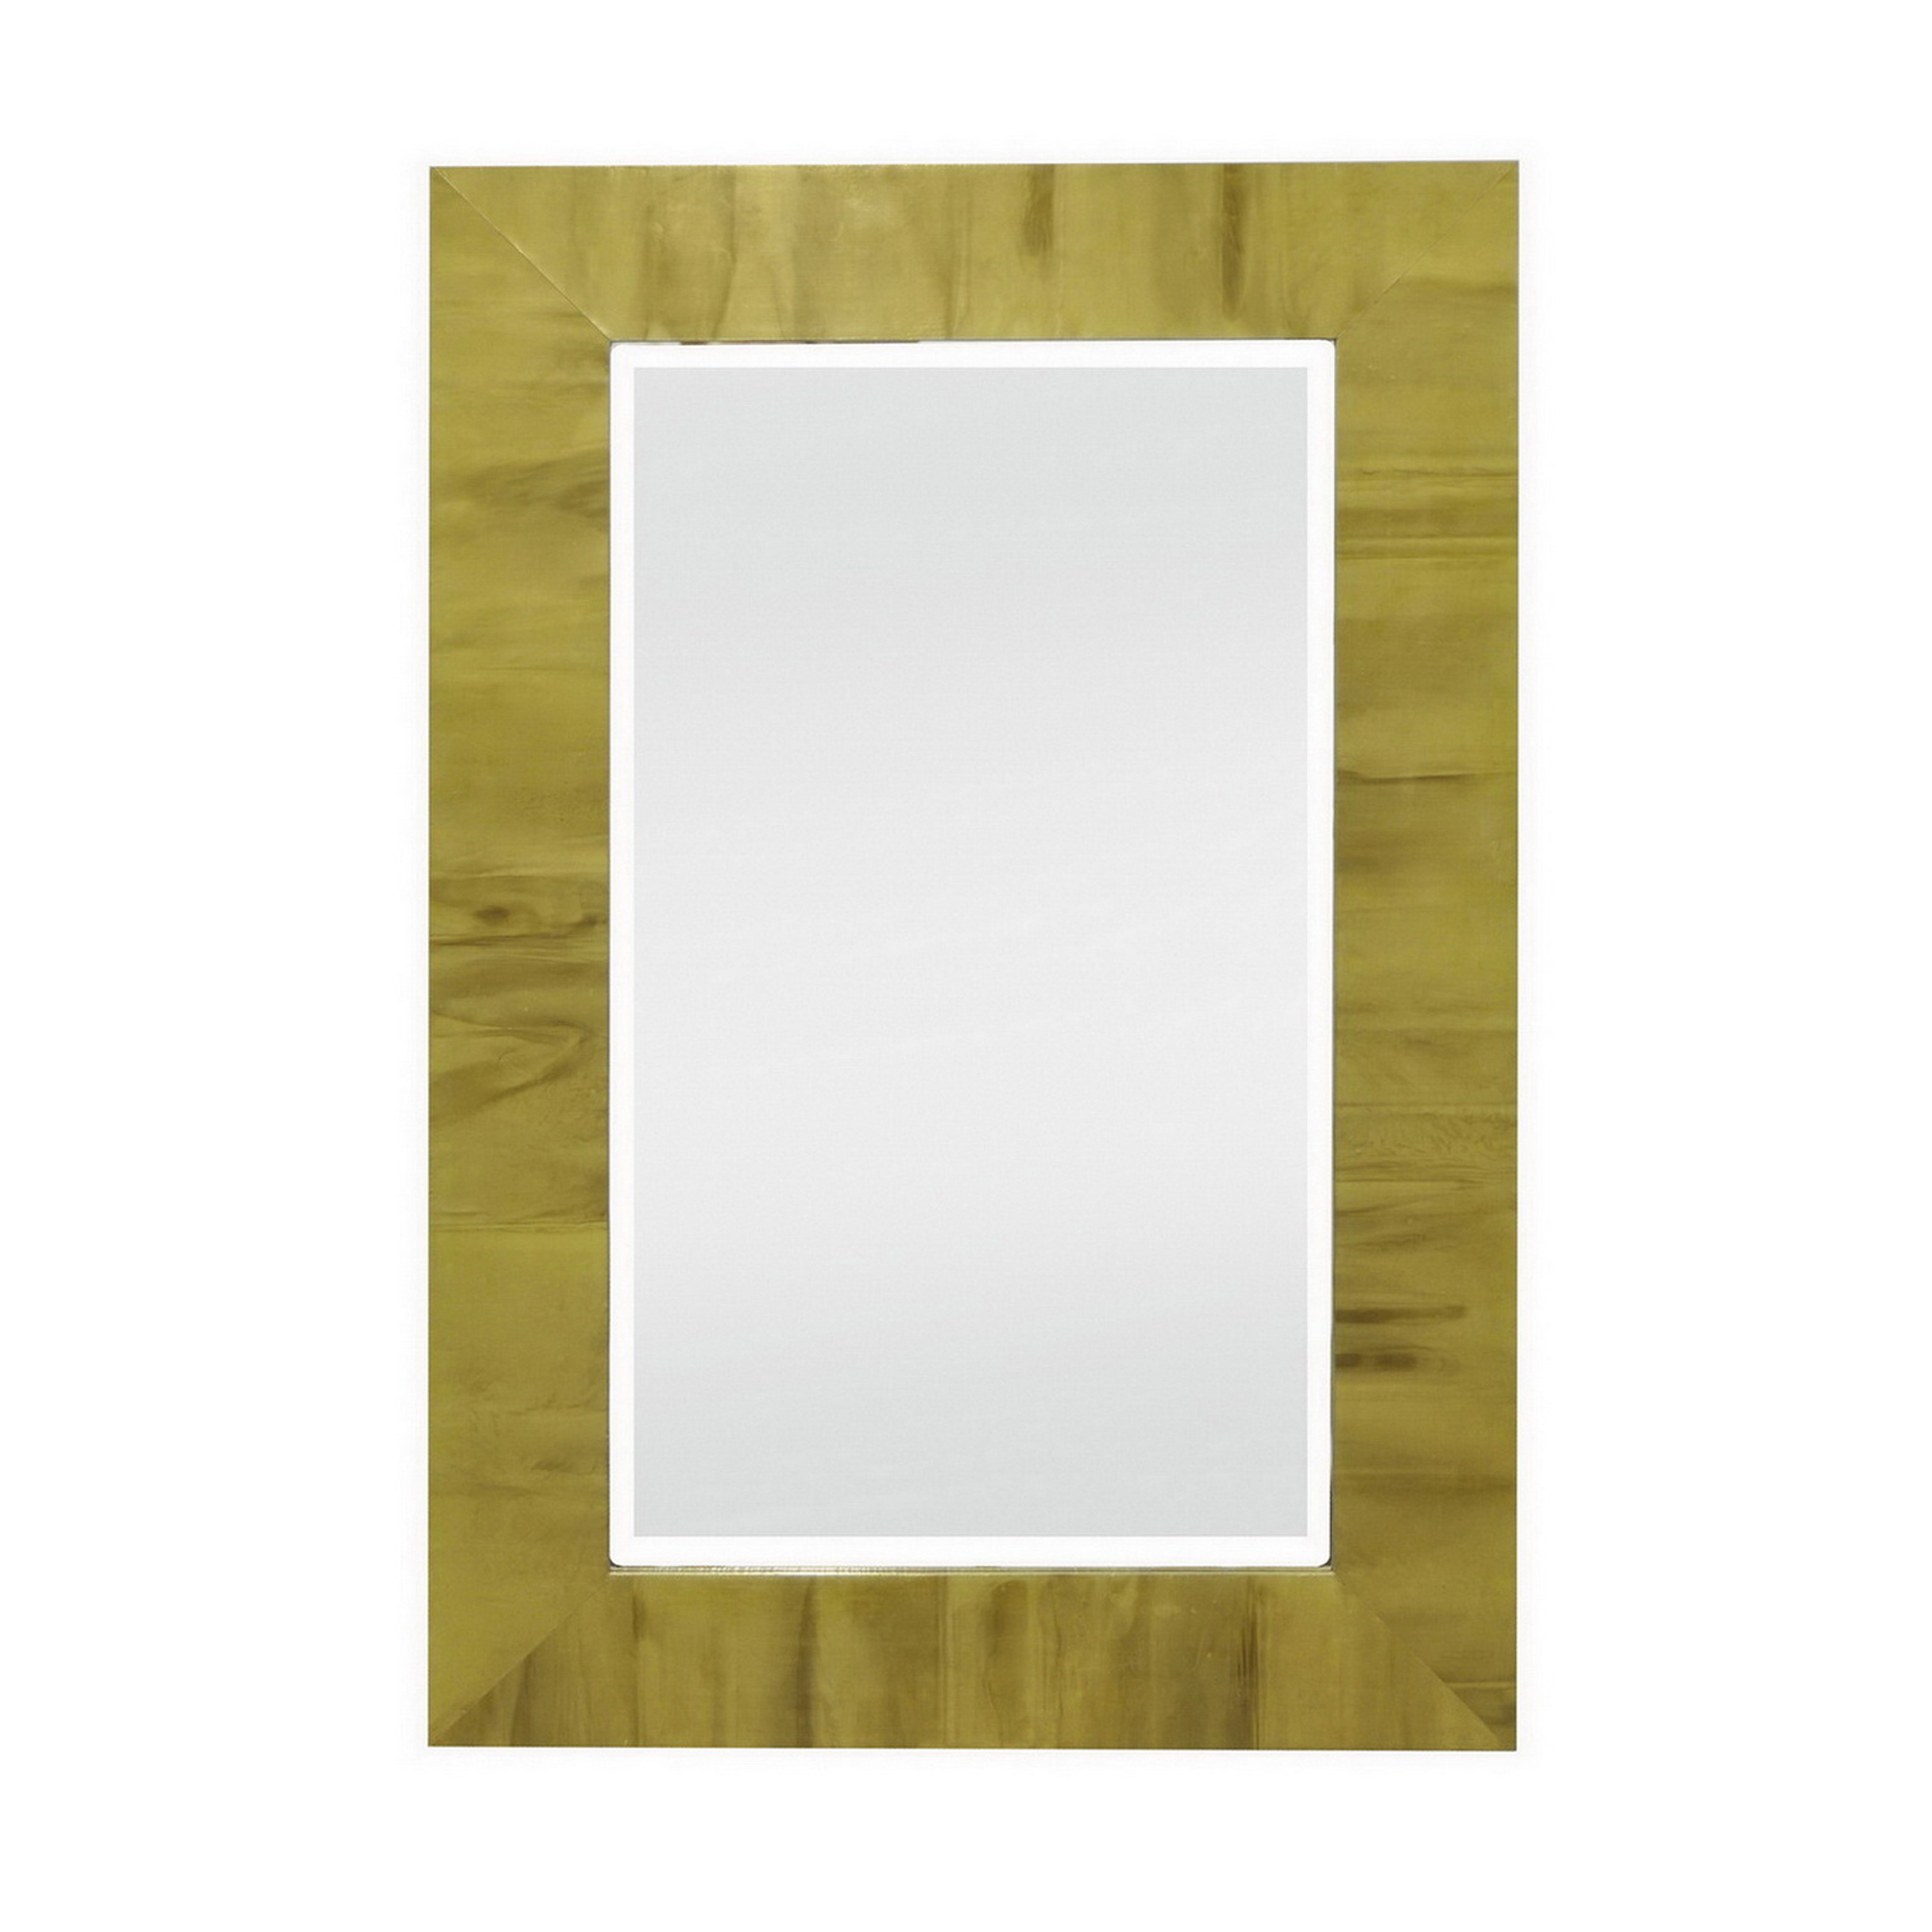 Mirrors for Your Home | Houzz